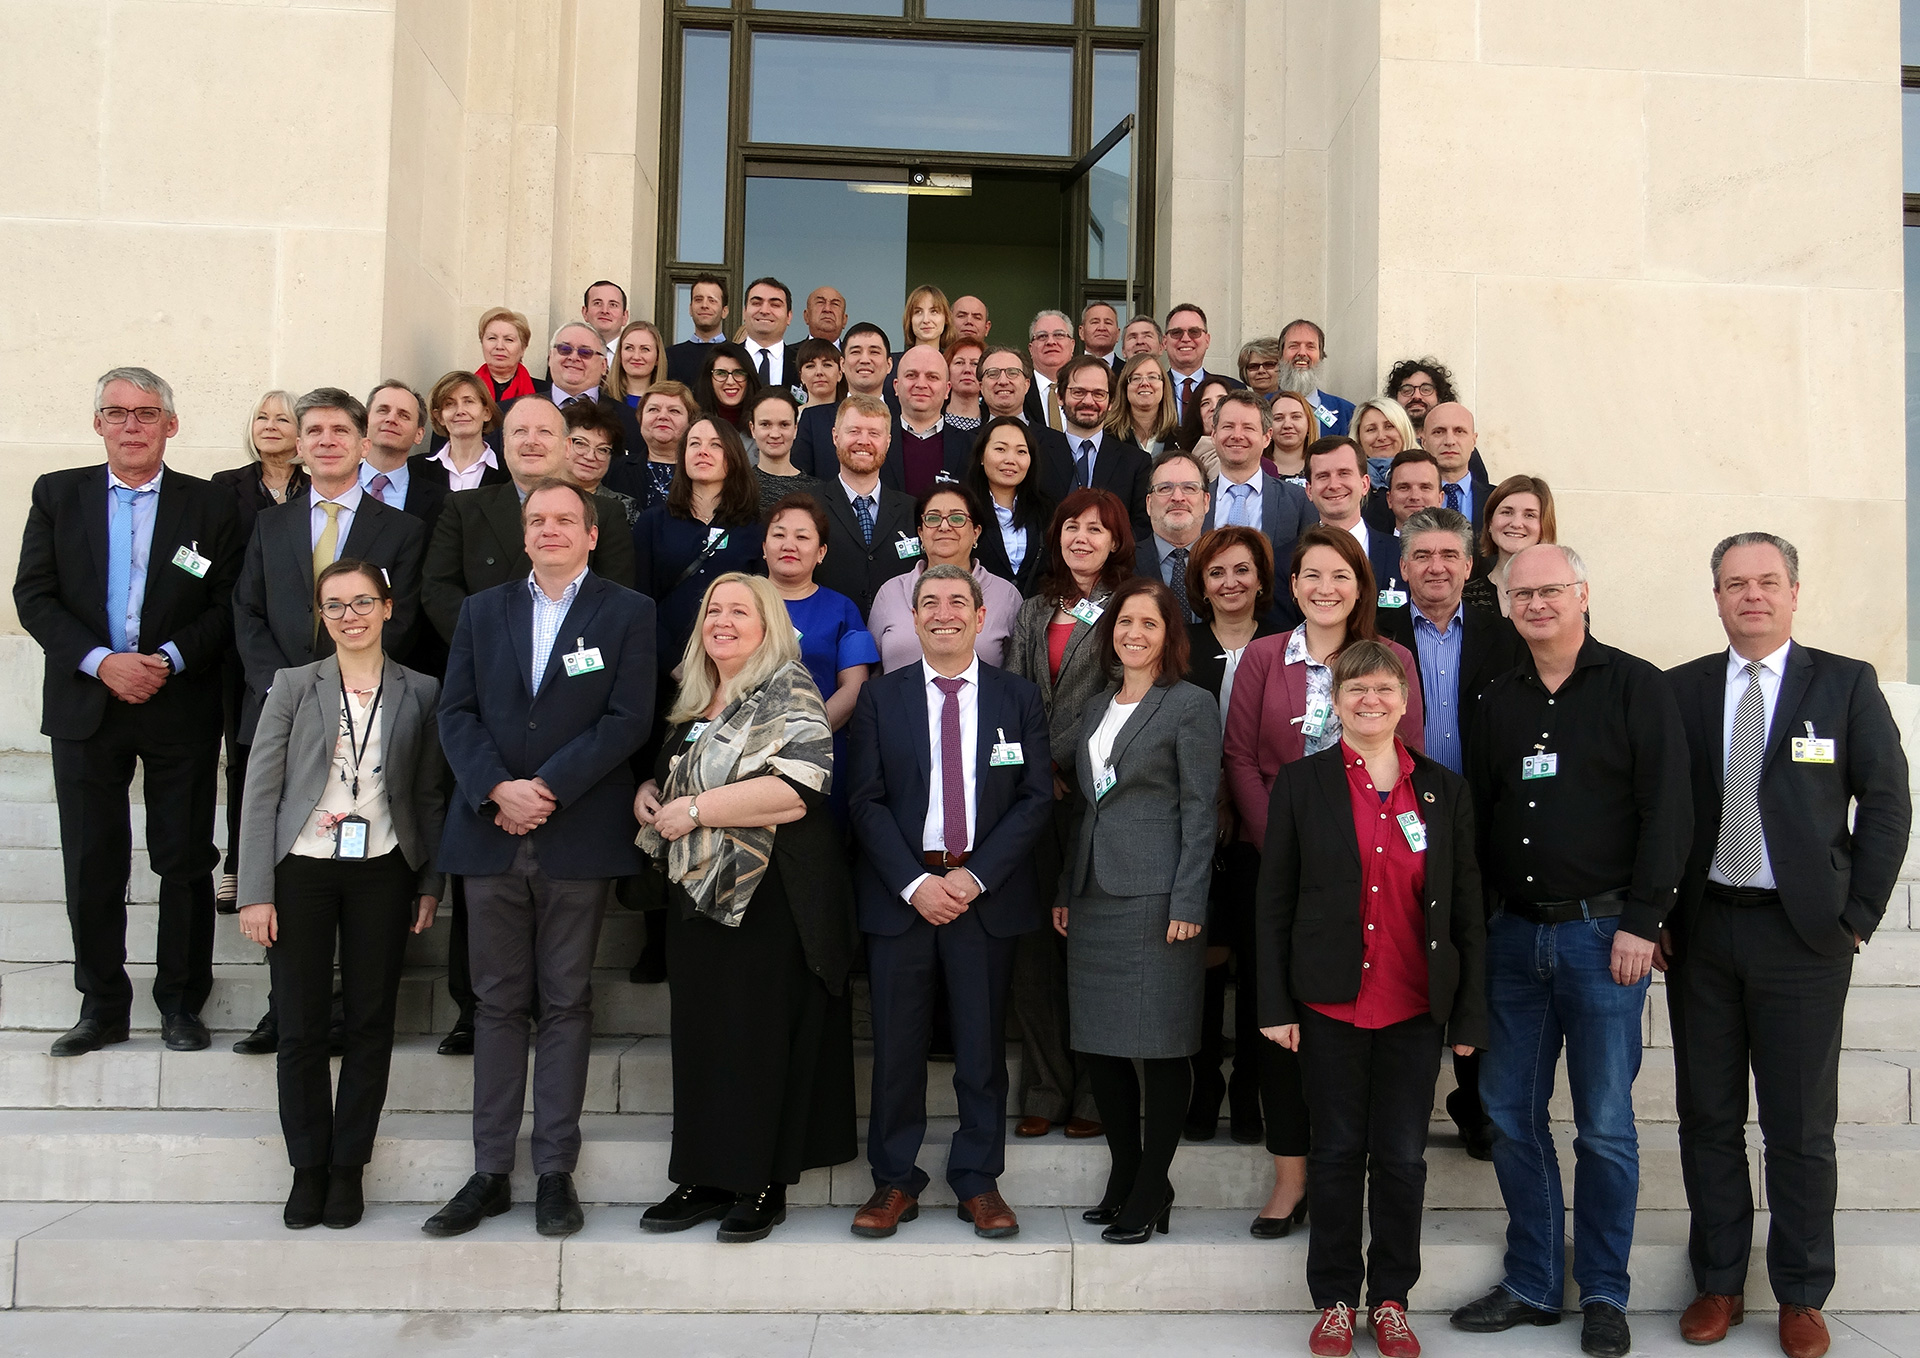 2019 Joint OECD/UNECE Seminar on Implementation of SEEA took place in Geneva